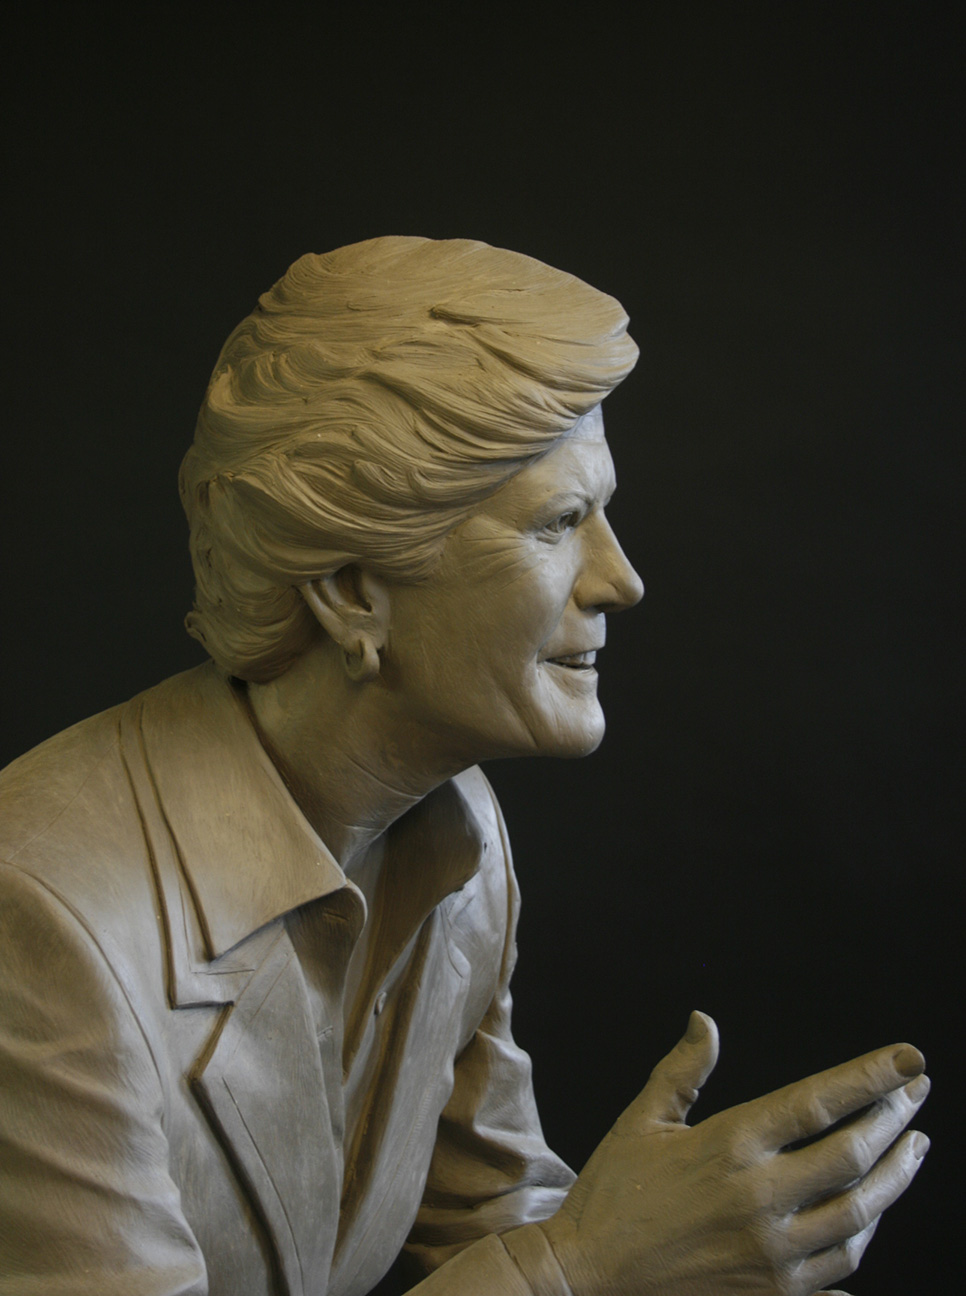 Pat Head Summitt - Clarksville, TN